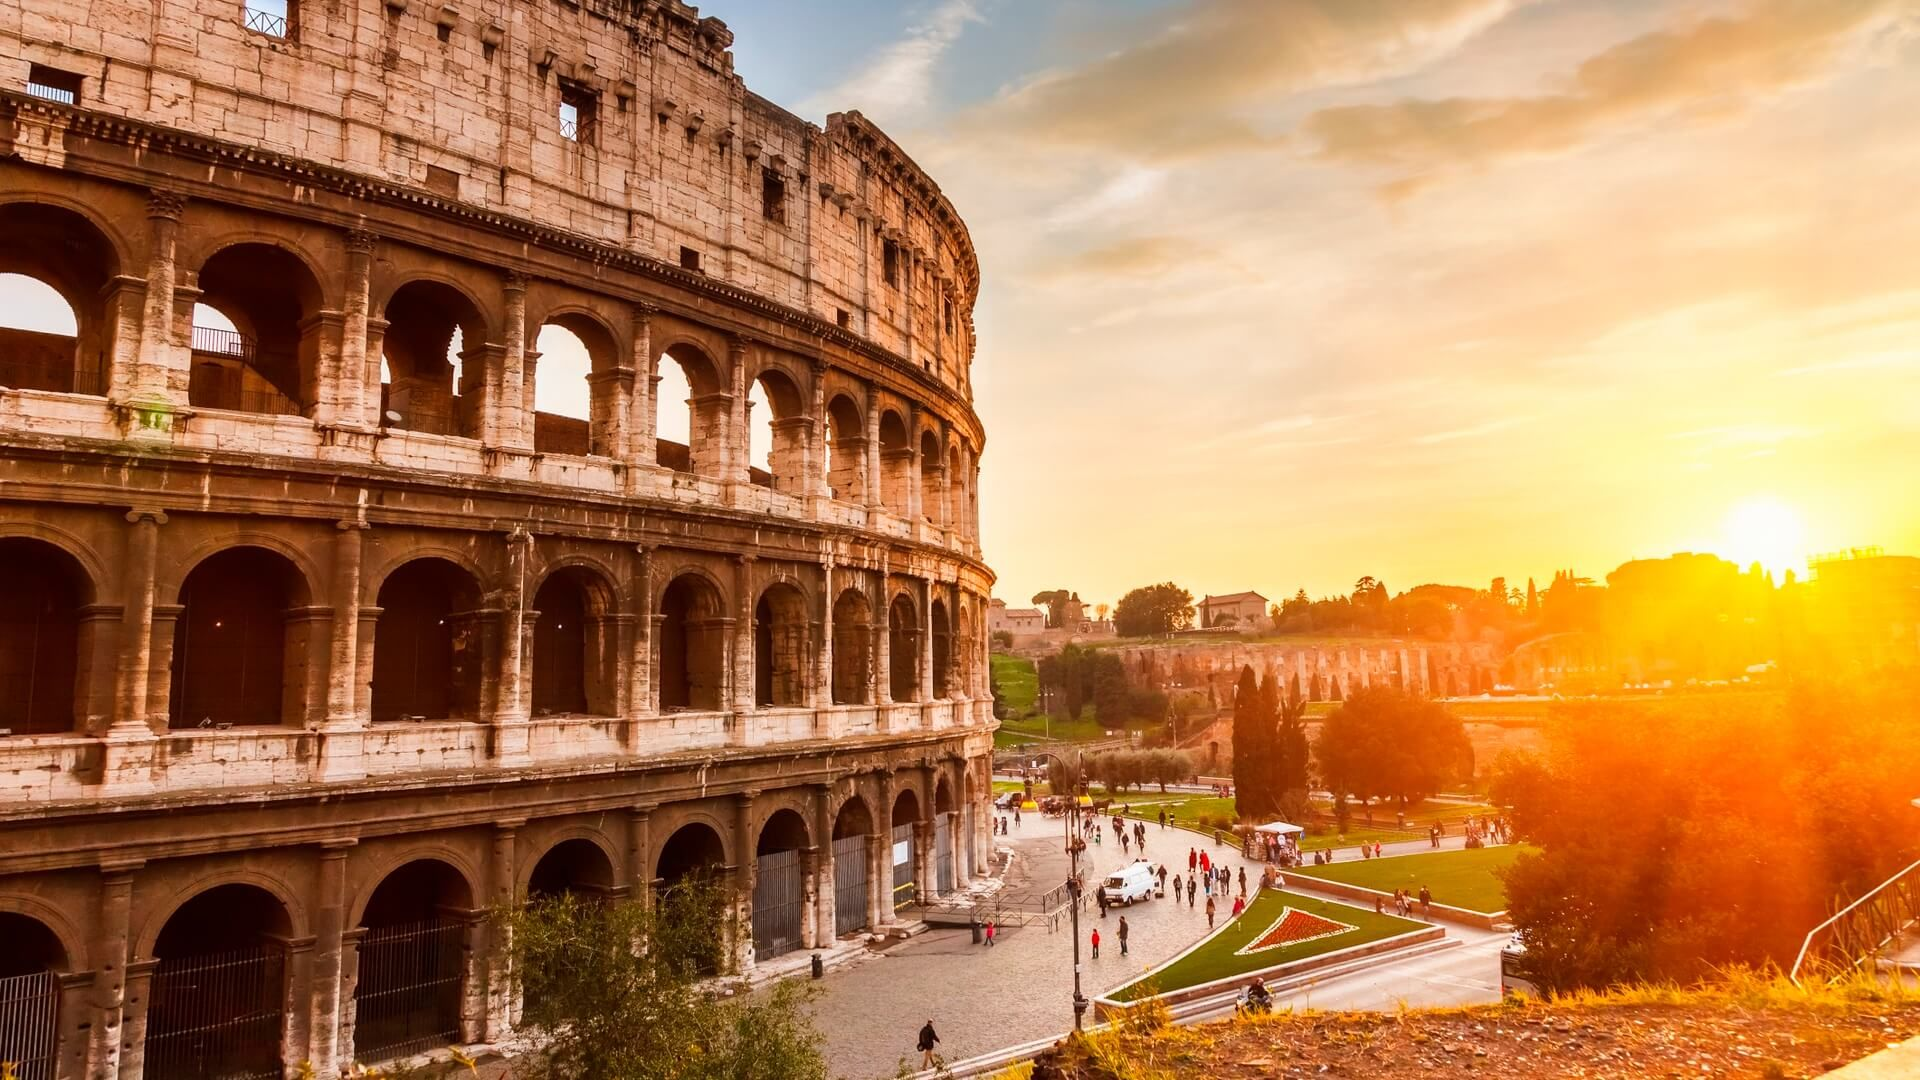 Colosseum Background